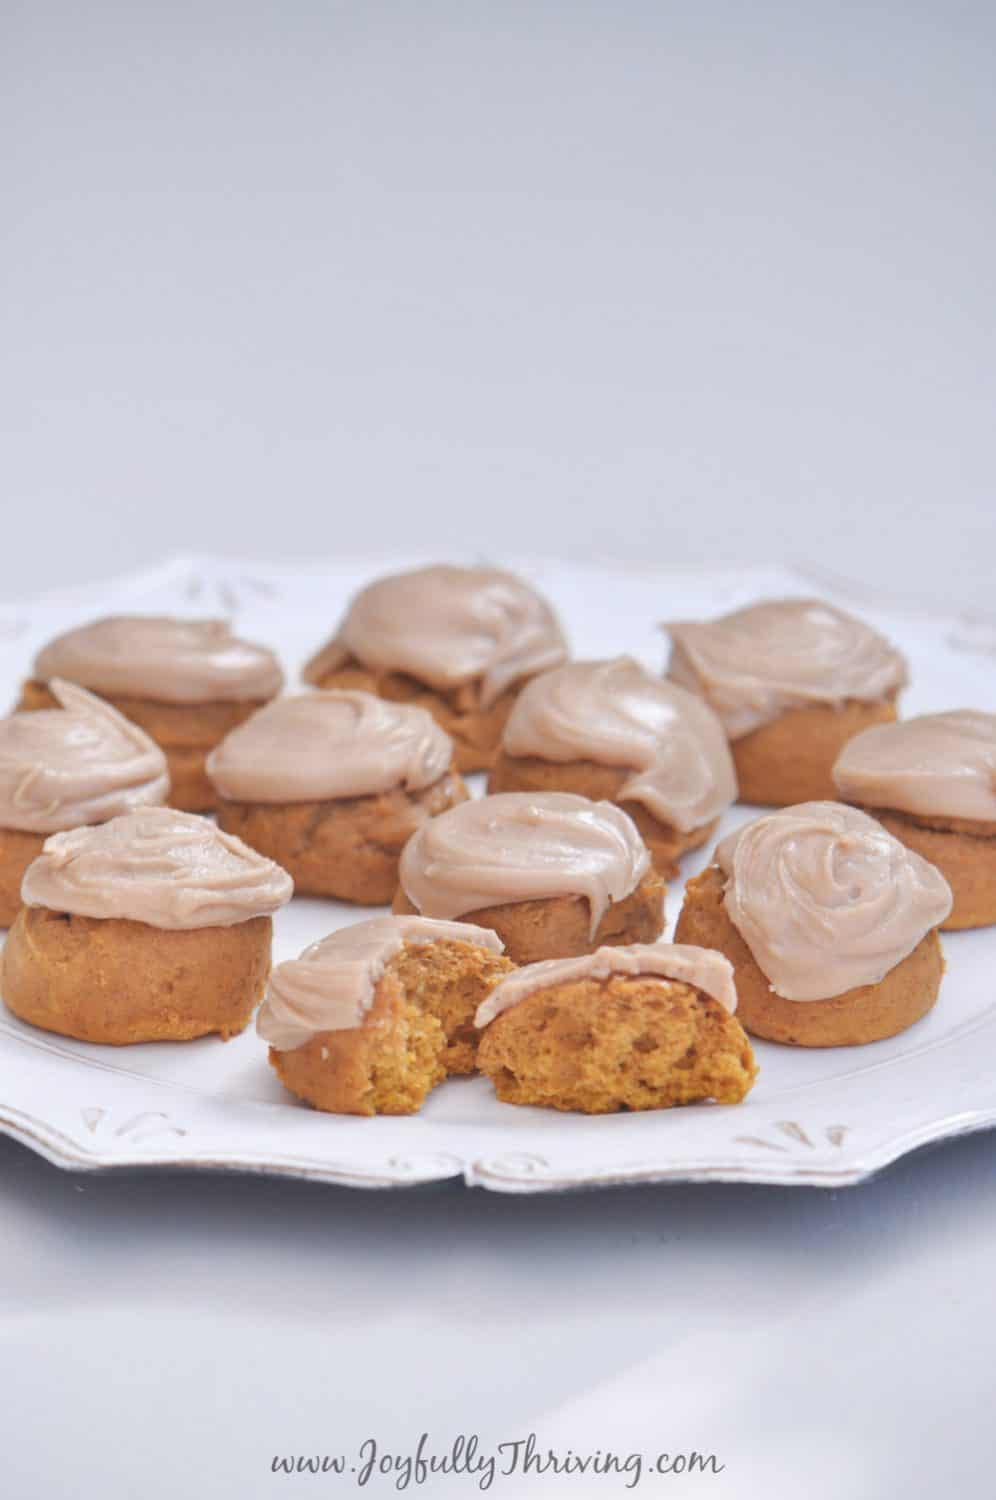 These bite sized frosted pumpkin cookies are my favorite fall treat. The perfect fall treat! #allthingspumpkin